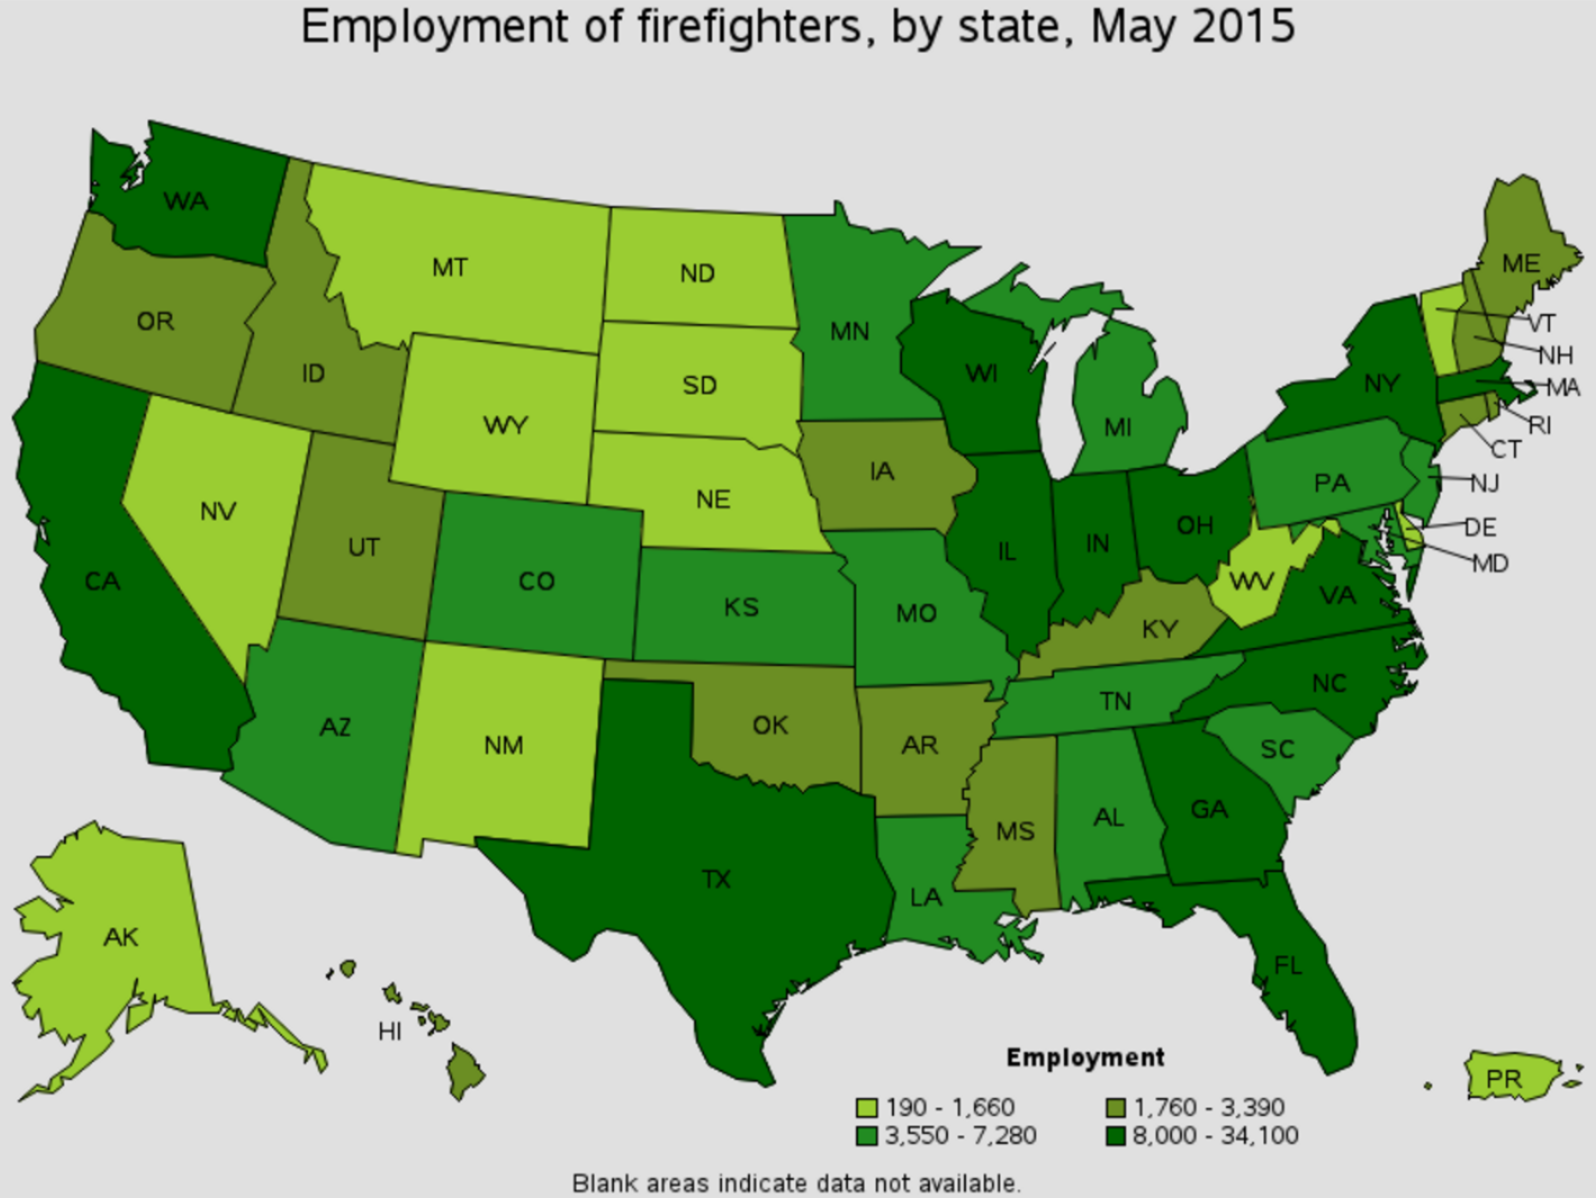 firefighter job outlook by state Winfield West Virginia